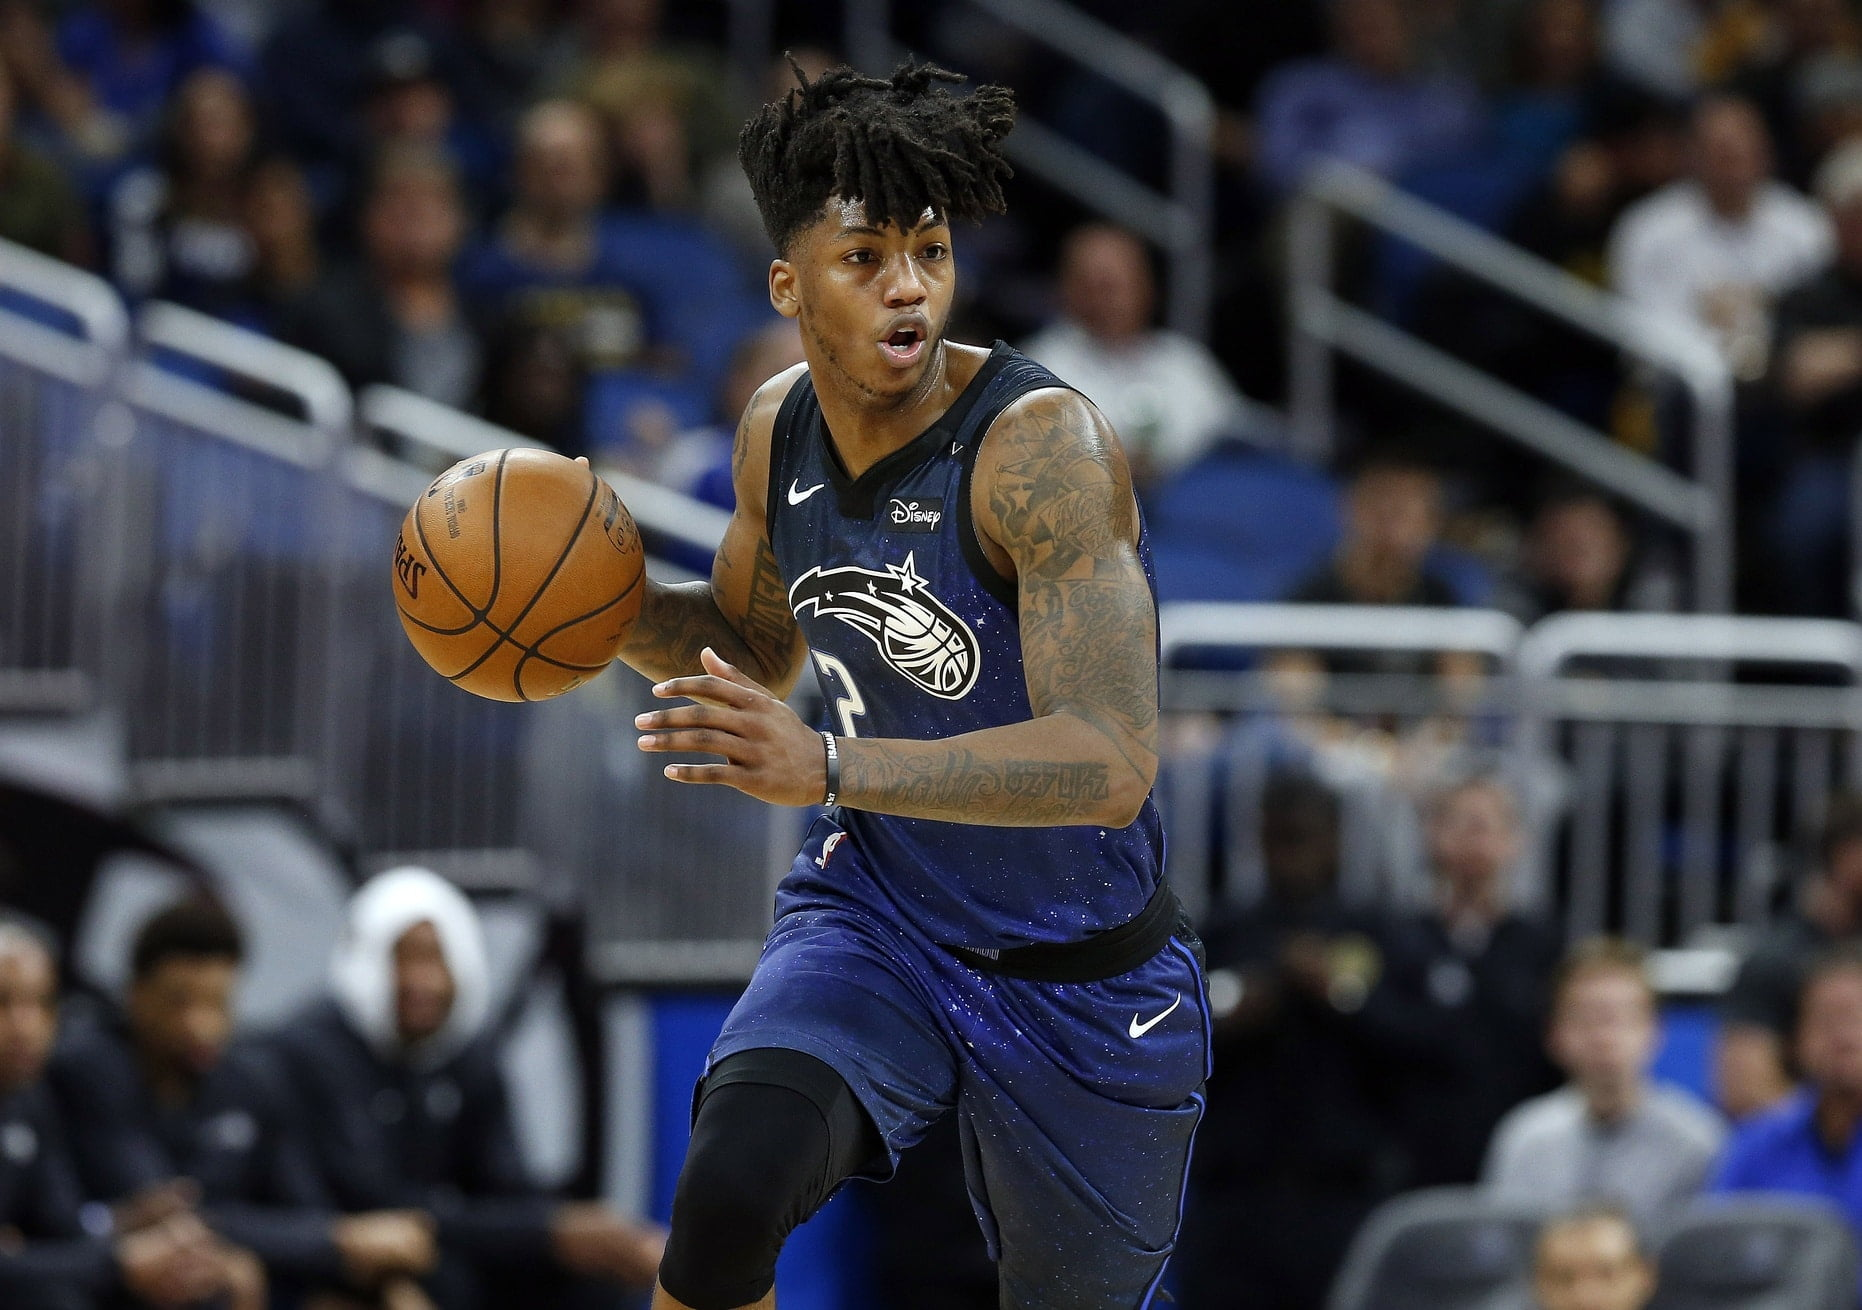 brand new 47b0a 5783a Report: Suns acquire Elfrid Payton from the Magic